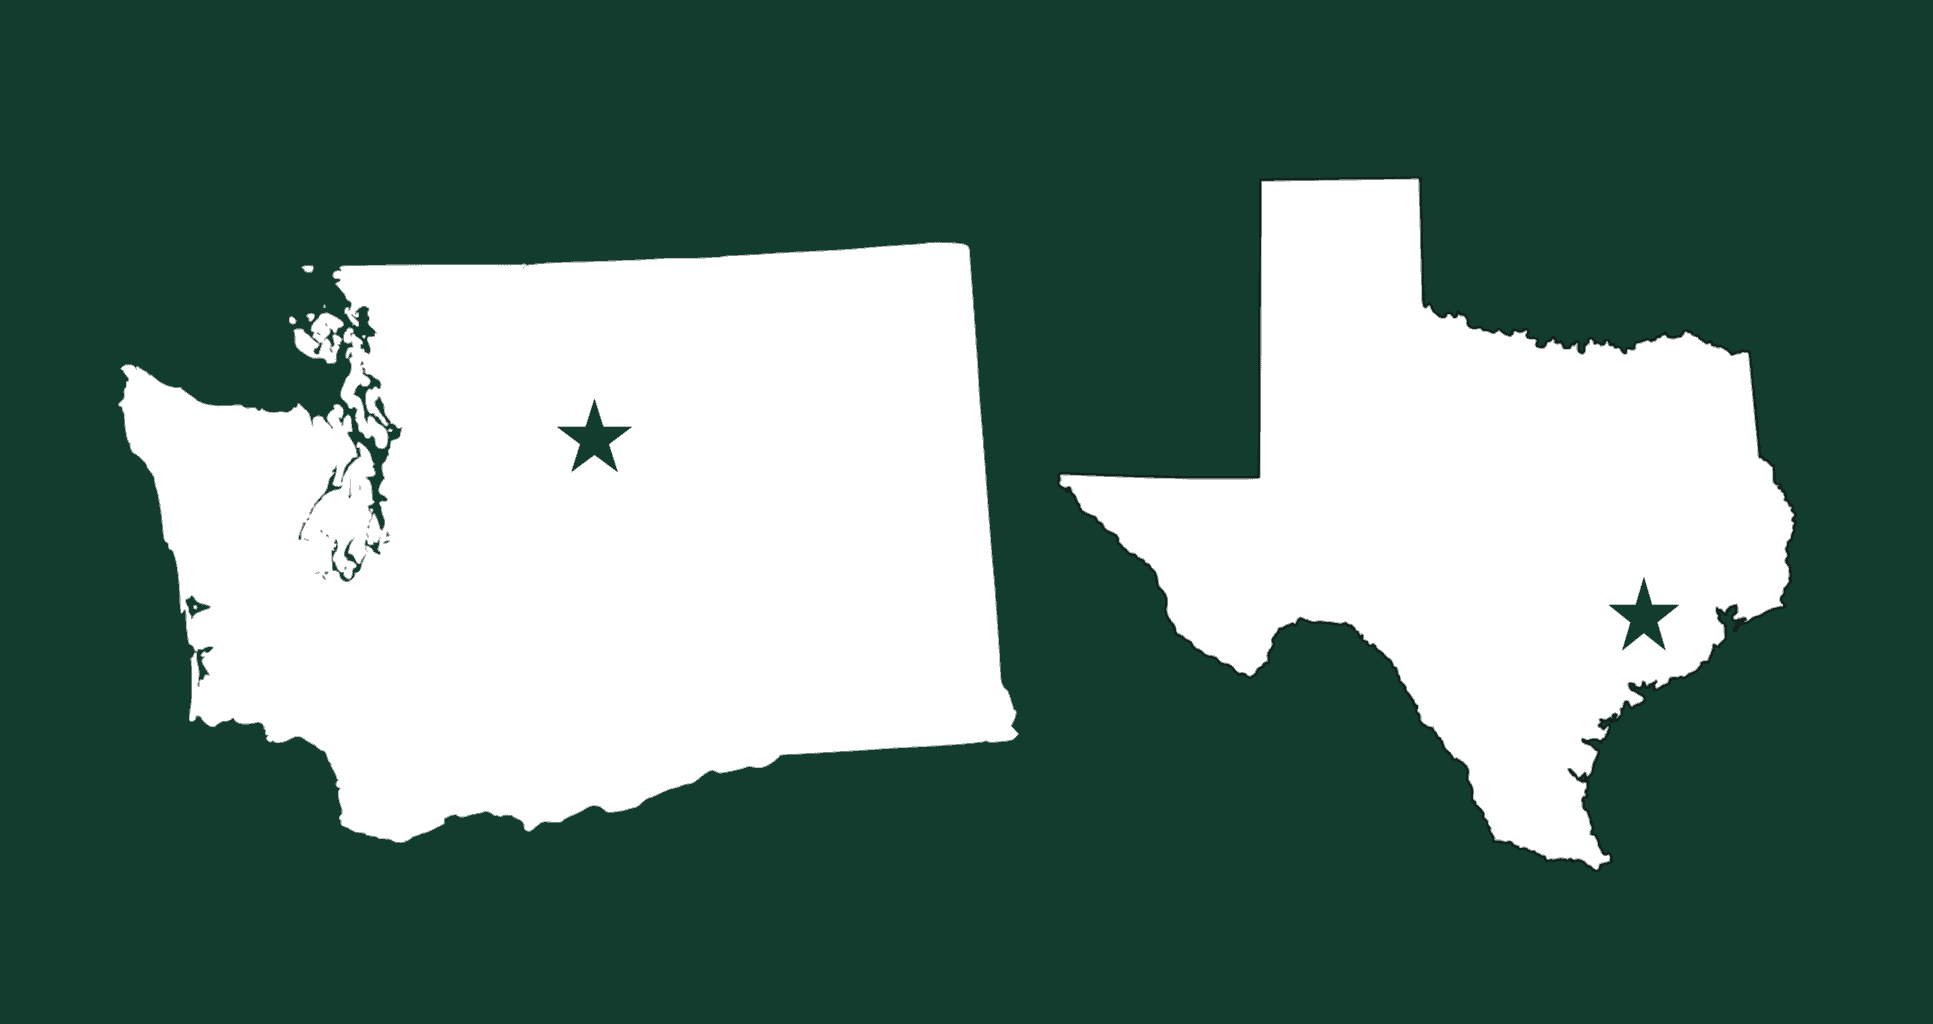 Maps of Washington and Texas indicating the general location of Leavenworth and Austin